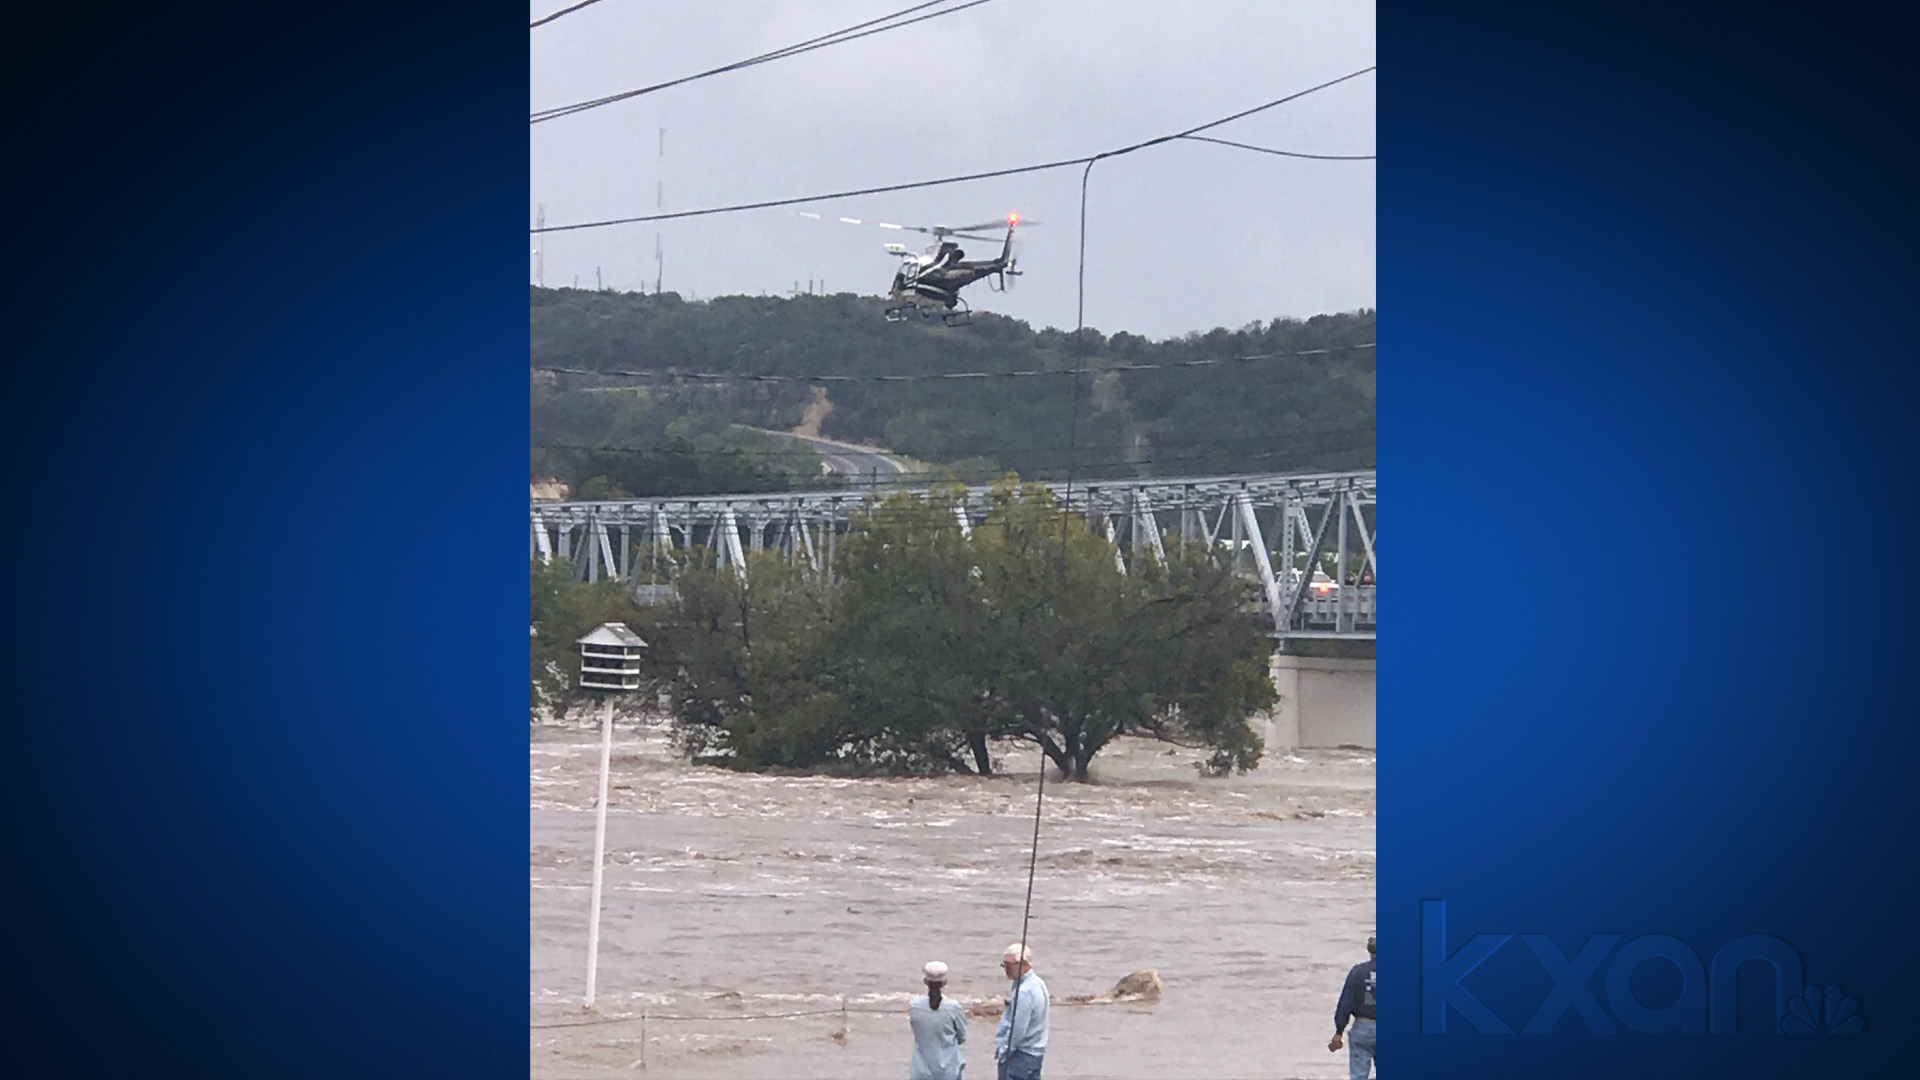 llano river helicopter rescue viewer photo 3_1539018466150.jpg.jpg